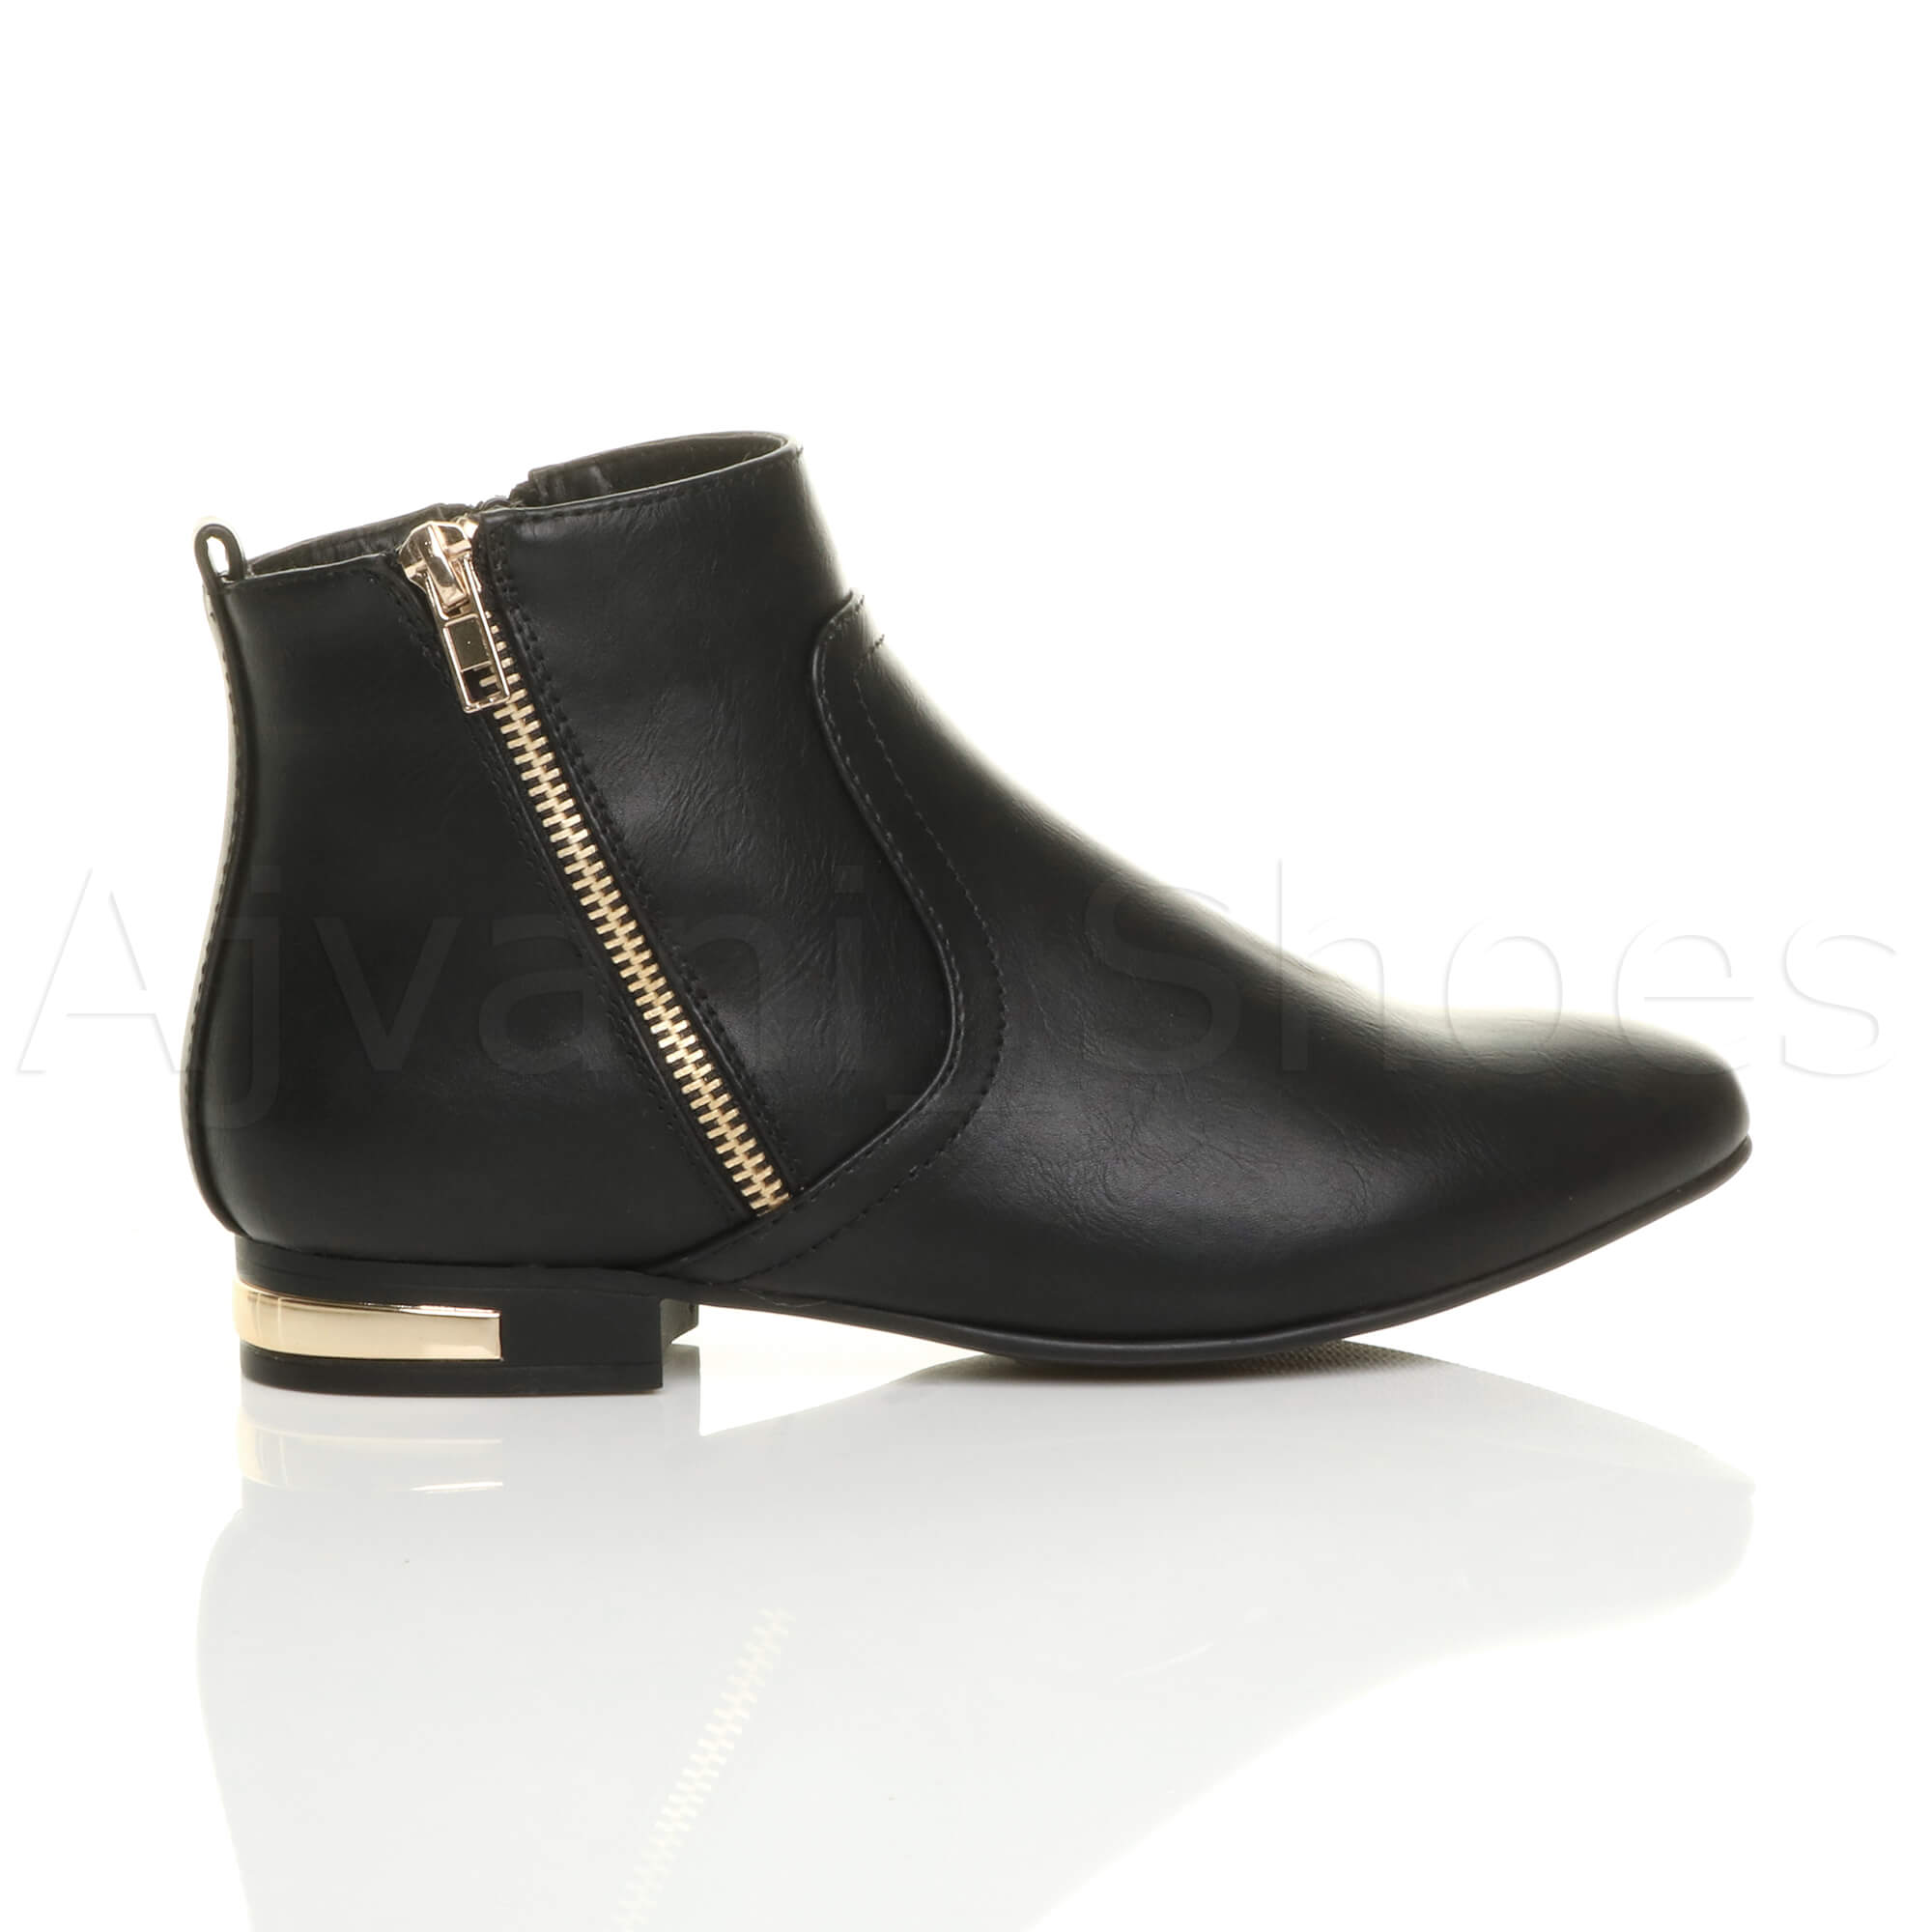 WOMENS-LADIES-LOW-HEEL-GOLD-ZIP-CONTRAST-RIDING-PIXIE-ANKLE-BOOTS-BOOTIES-SIZE thumbnail 3